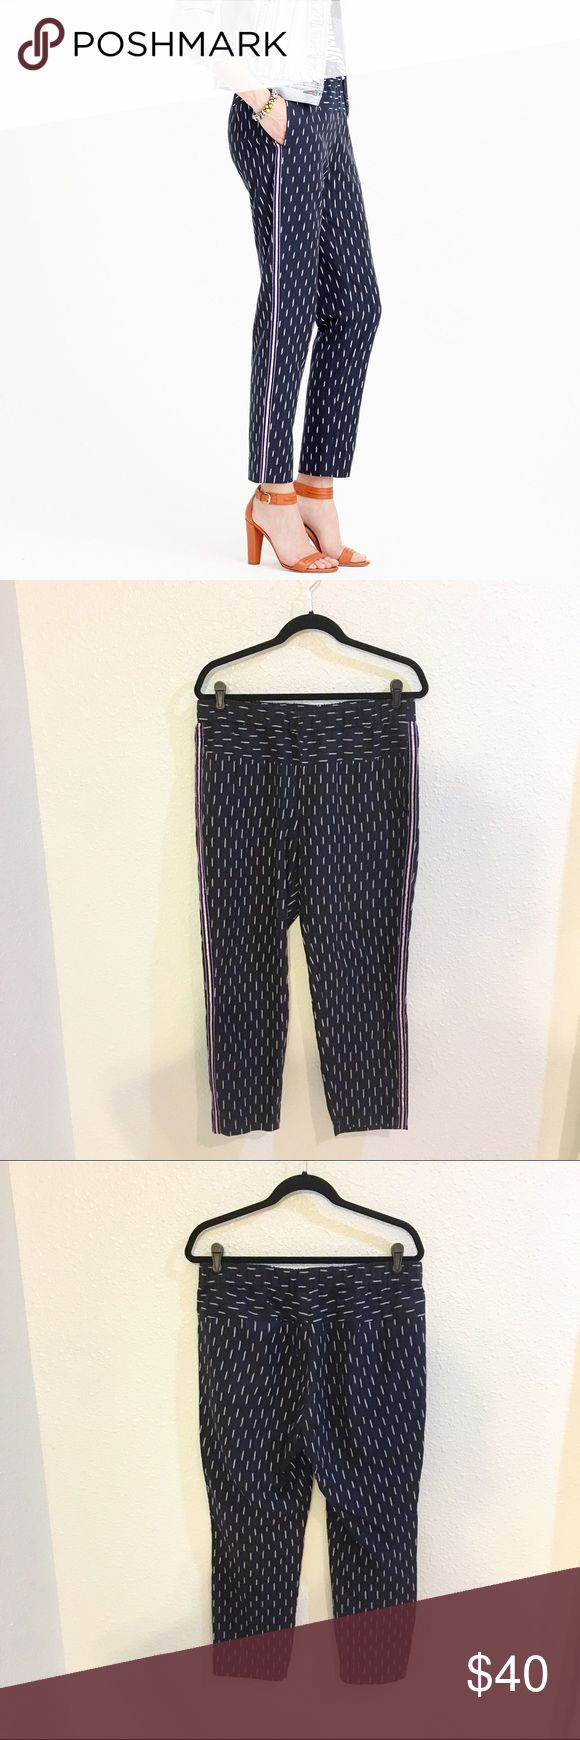 """J crew ikat jogger with tuxedo stripe Great J. Crew ikat print jogger. Has a cool tuxedo stripe down the side. Elastic waist and pockets. Size Large. Waist is 16 1/2""""  inseam is 26"""" J. Crew Pants Track Pants & Joggers"""